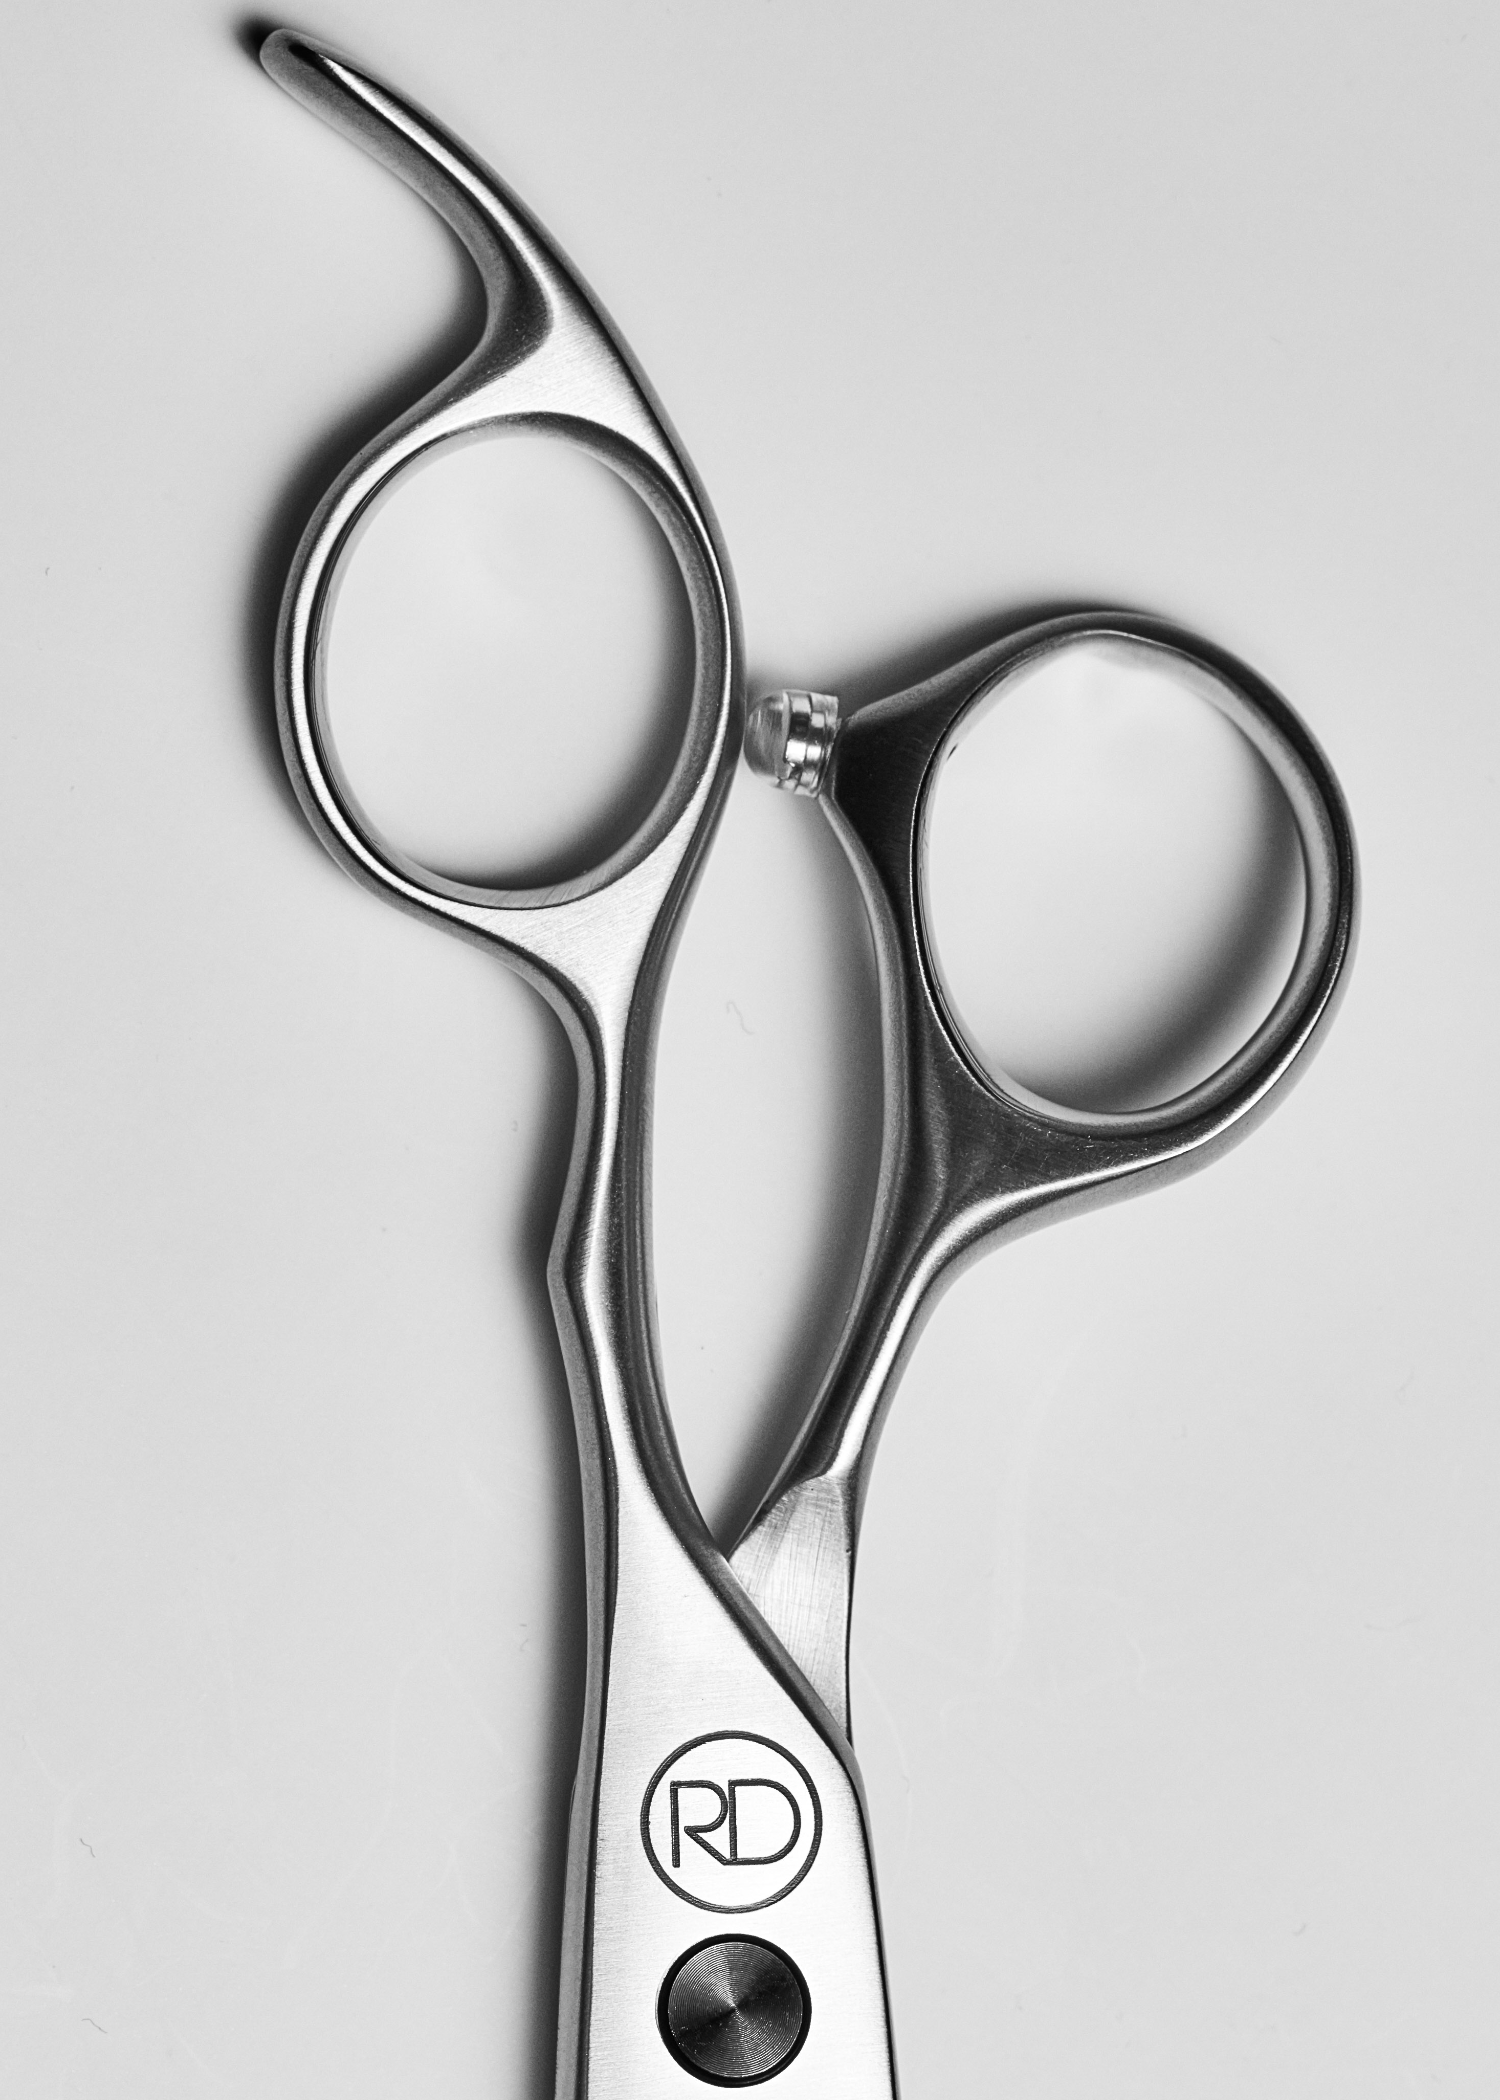 ARID - RHODE.PRO- haircutting - scissors - shears